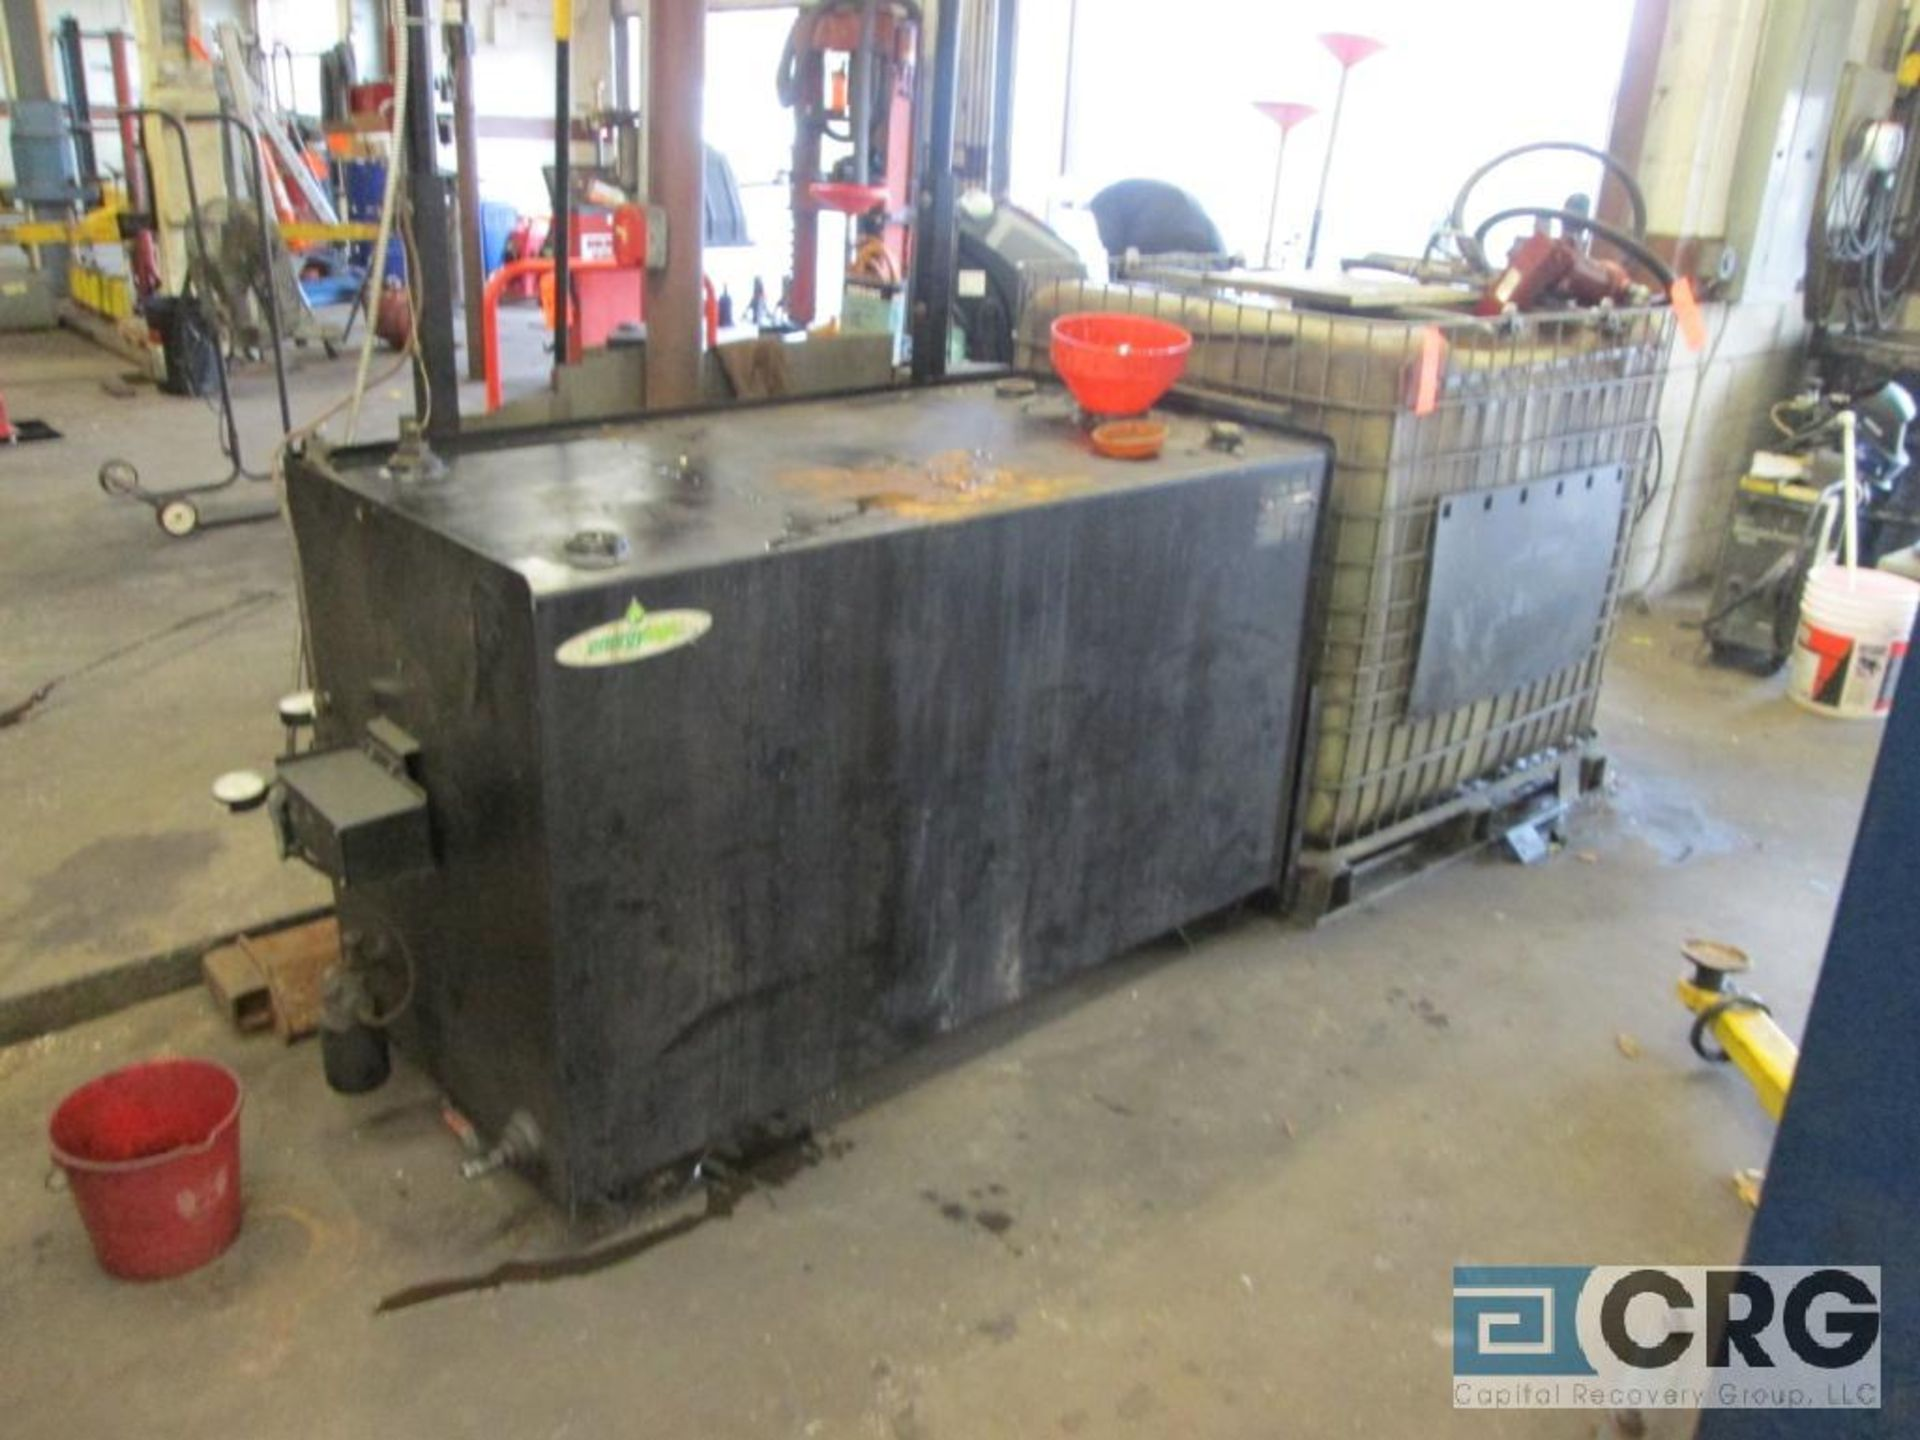 Energy Logic EL-200H waste oil furnace with Energylogic 250 gal. supply tank, s/n FT-007294, and 300 - Image 4 of 7